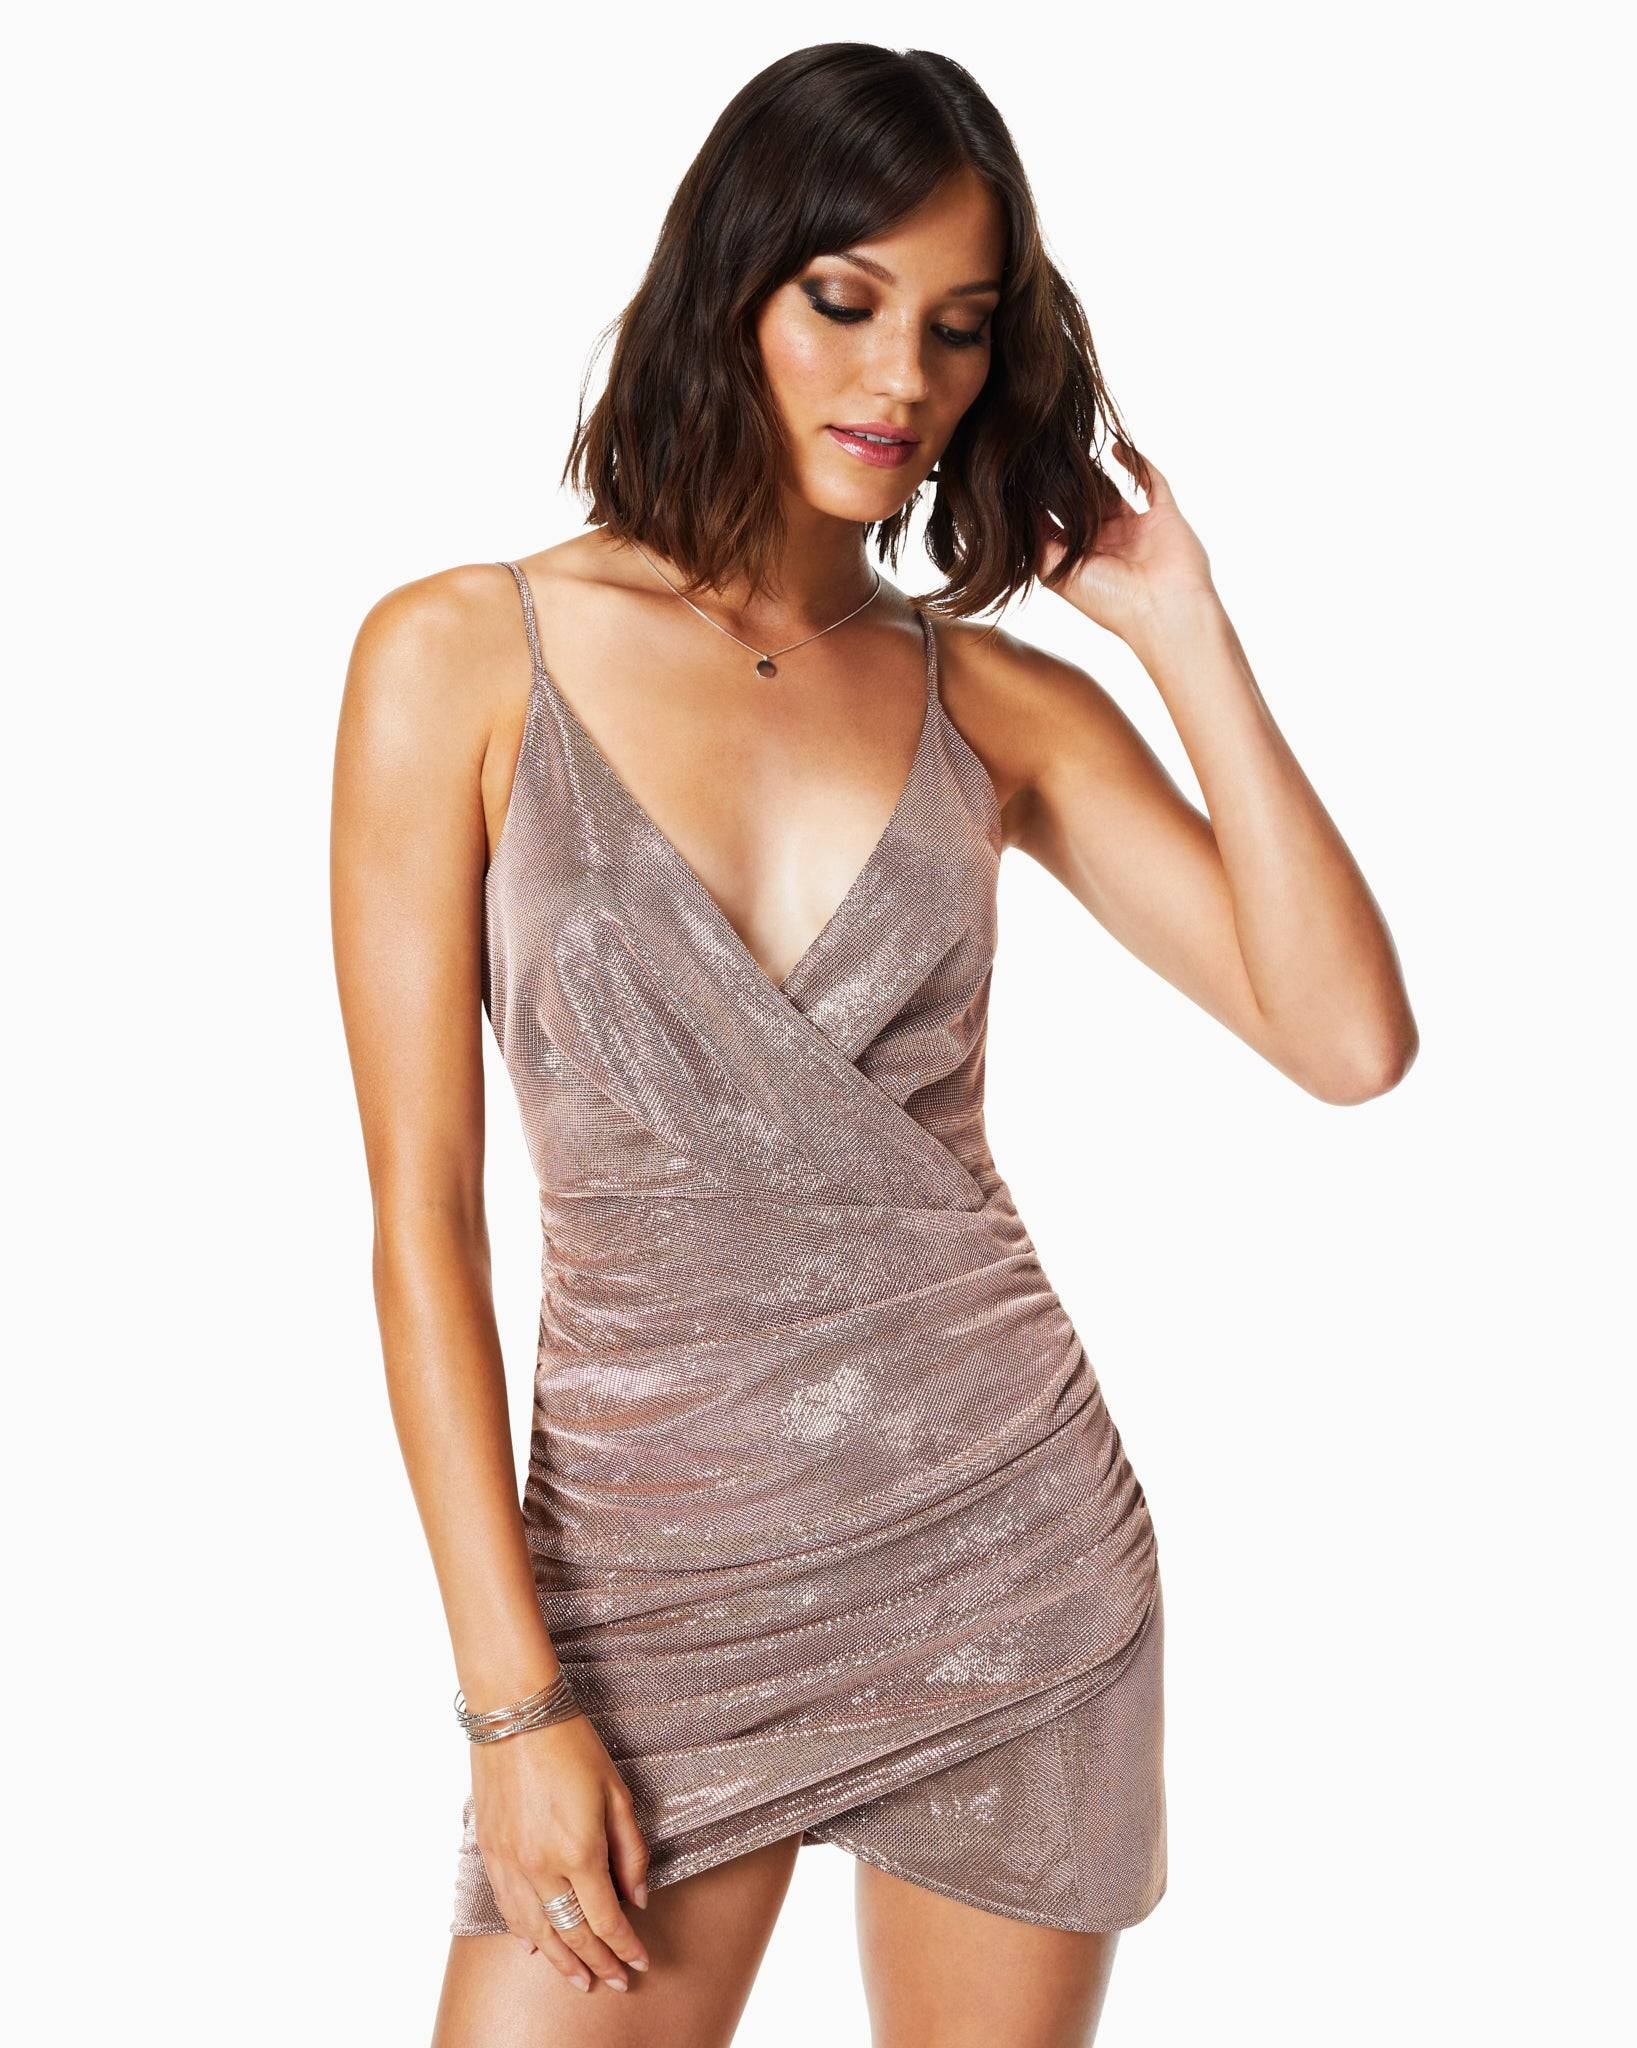 Madilyn Ruched Mini Dress in Holiday Blush - Holiday Blush - Size: 14